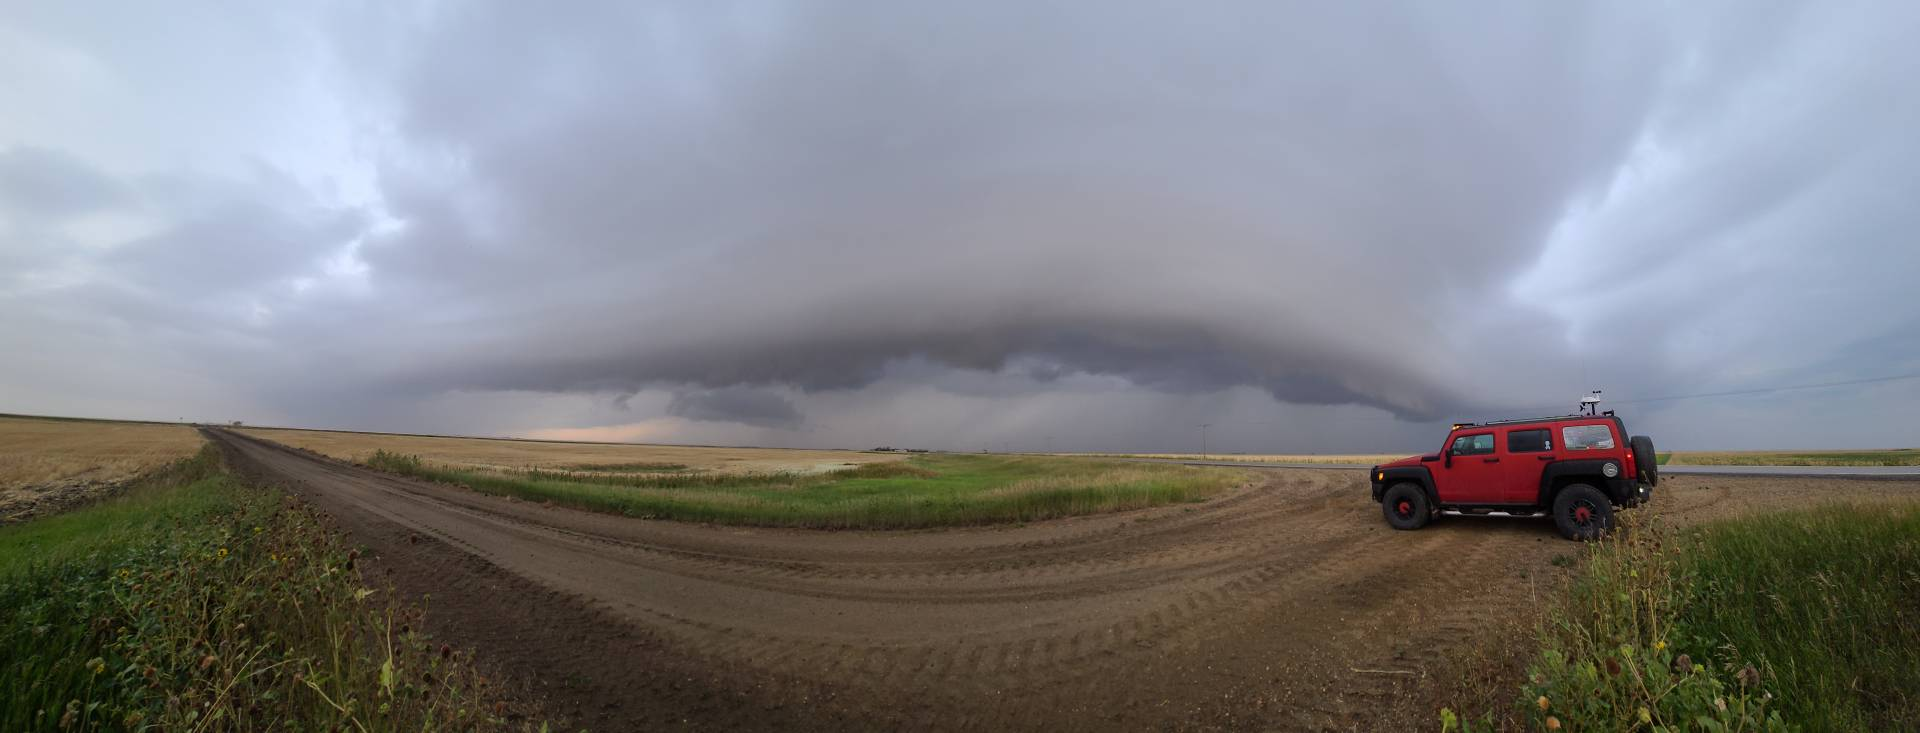 East of Torquay, SK right now! 🤤🤤🤤 #skstorm